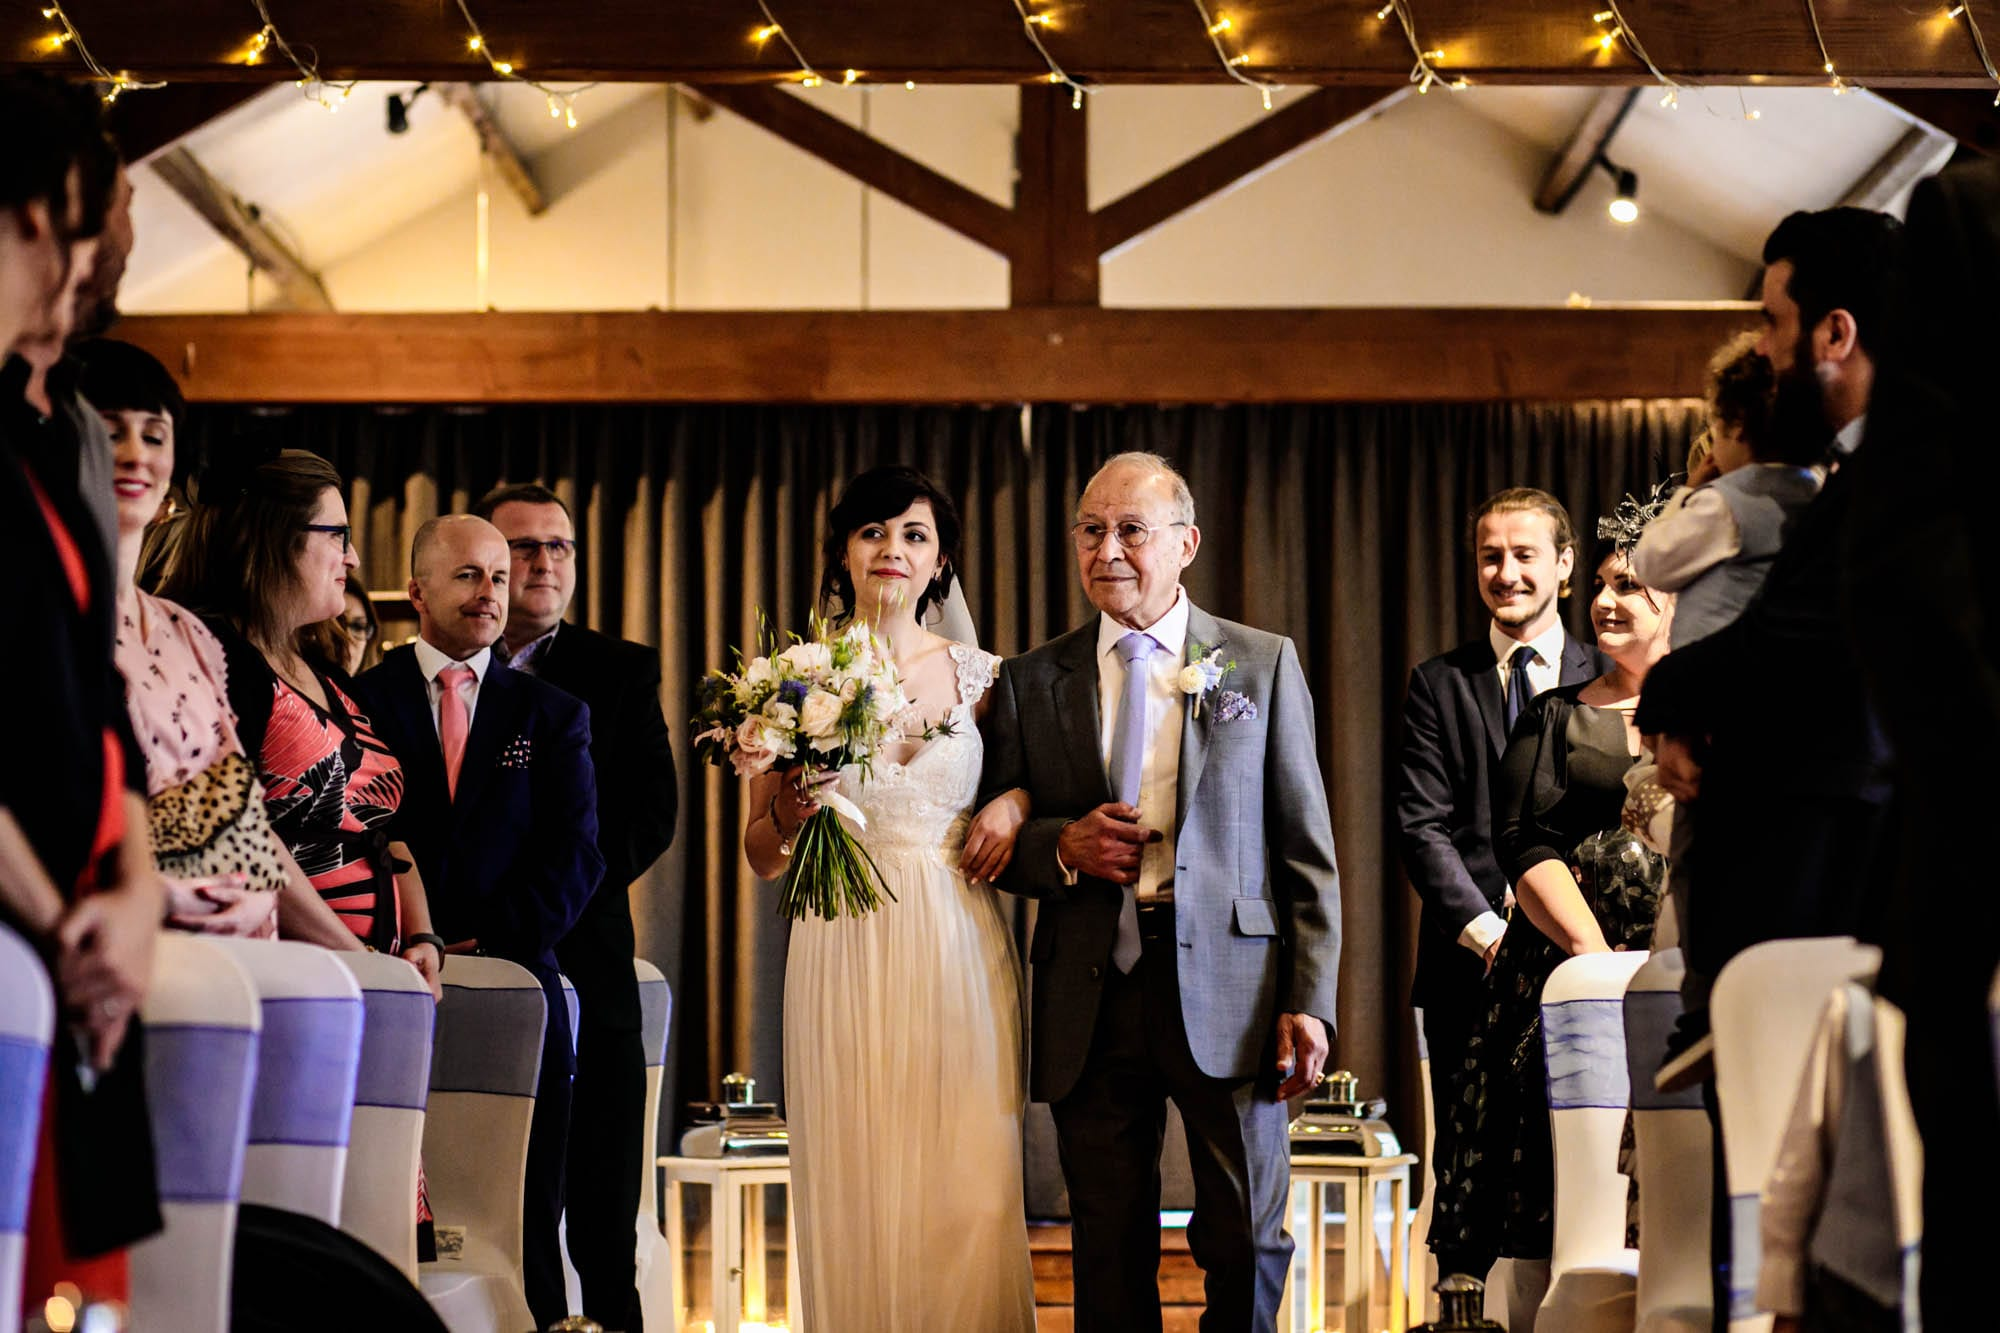 Castlefield Rooms Wedding Ceremonies